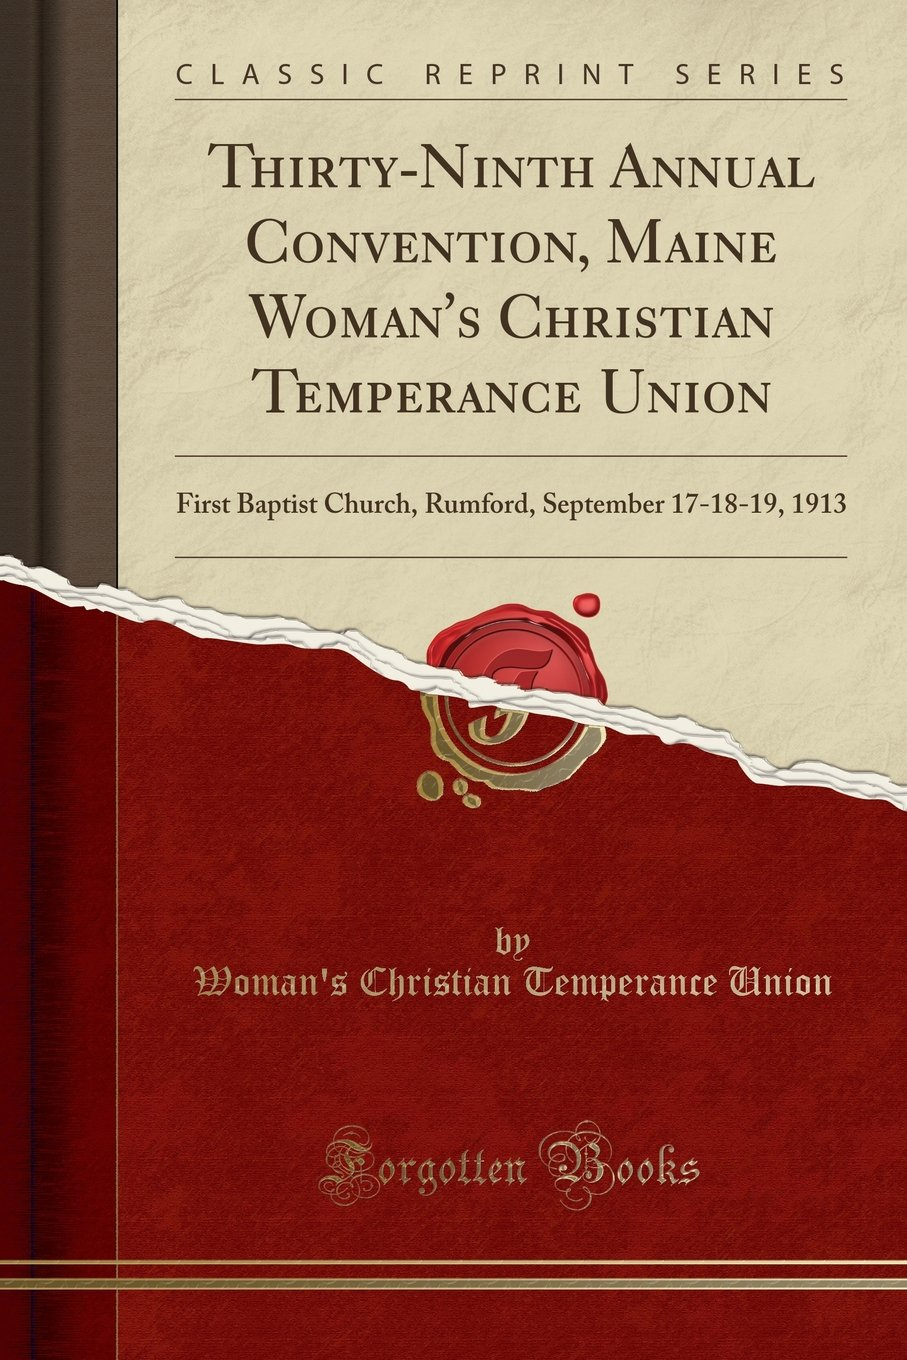 Download Thirty-Ninth Annual Convention, Maine Woman's Christian Temperance Union: First Baptist Church, Rumford, September 17-18-19, 1913 (Classic Reprint) pdf epub